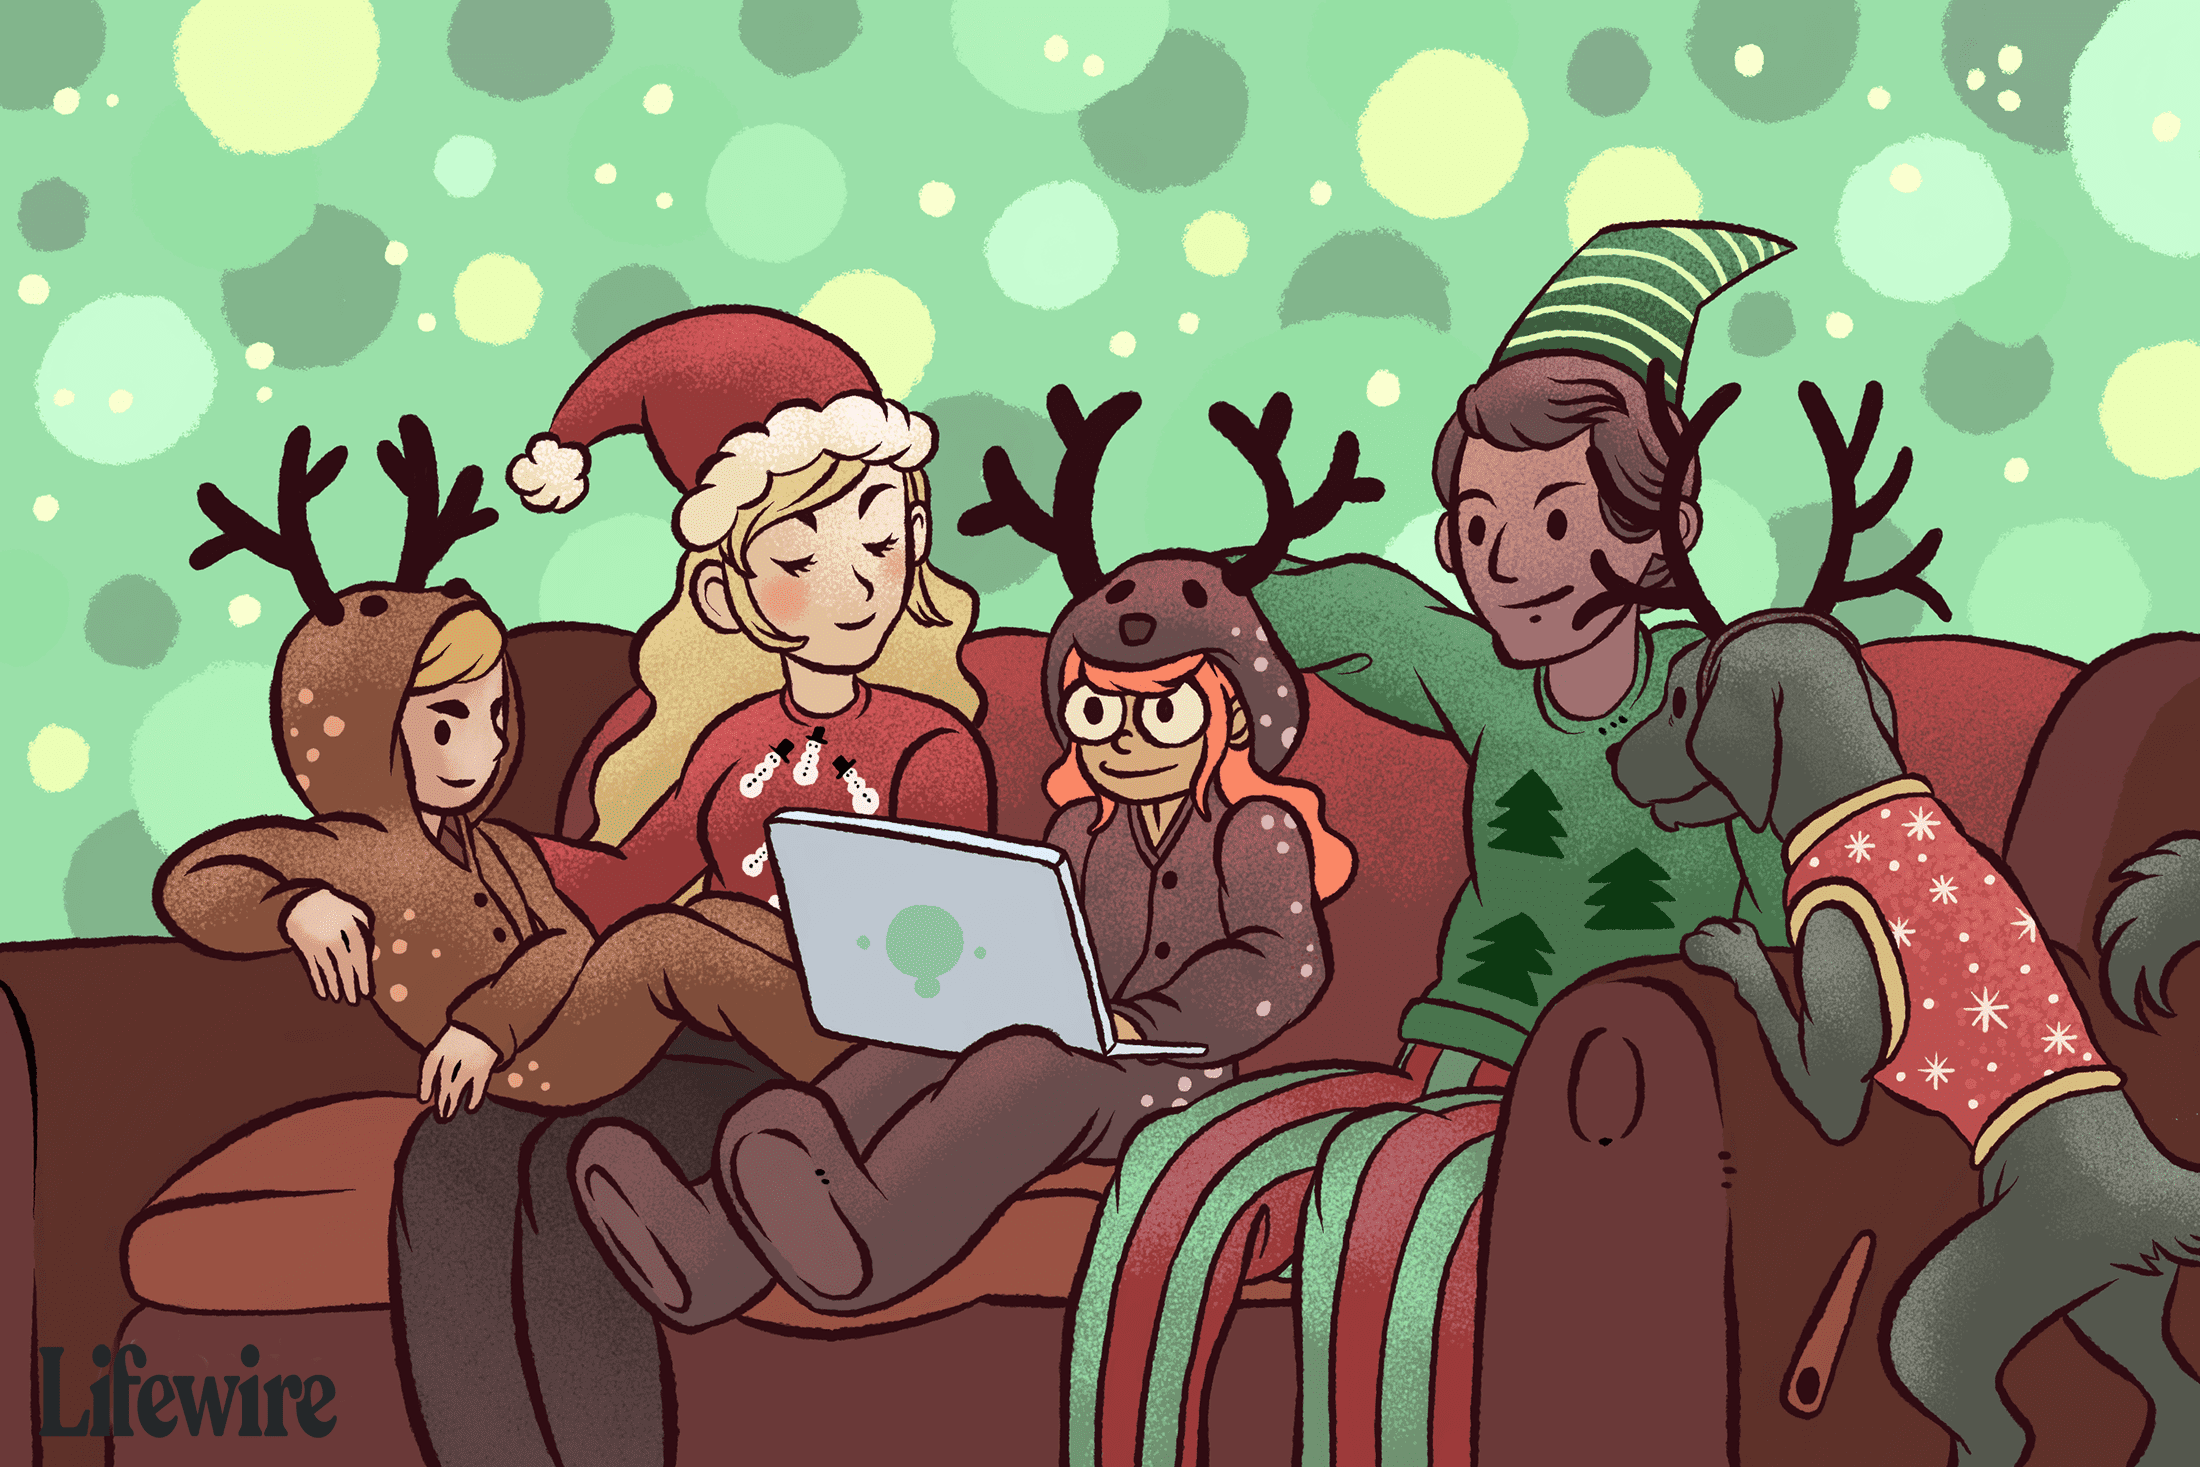 A family dressed in novelty Christmas outfits on a couch watching movies on a laptop